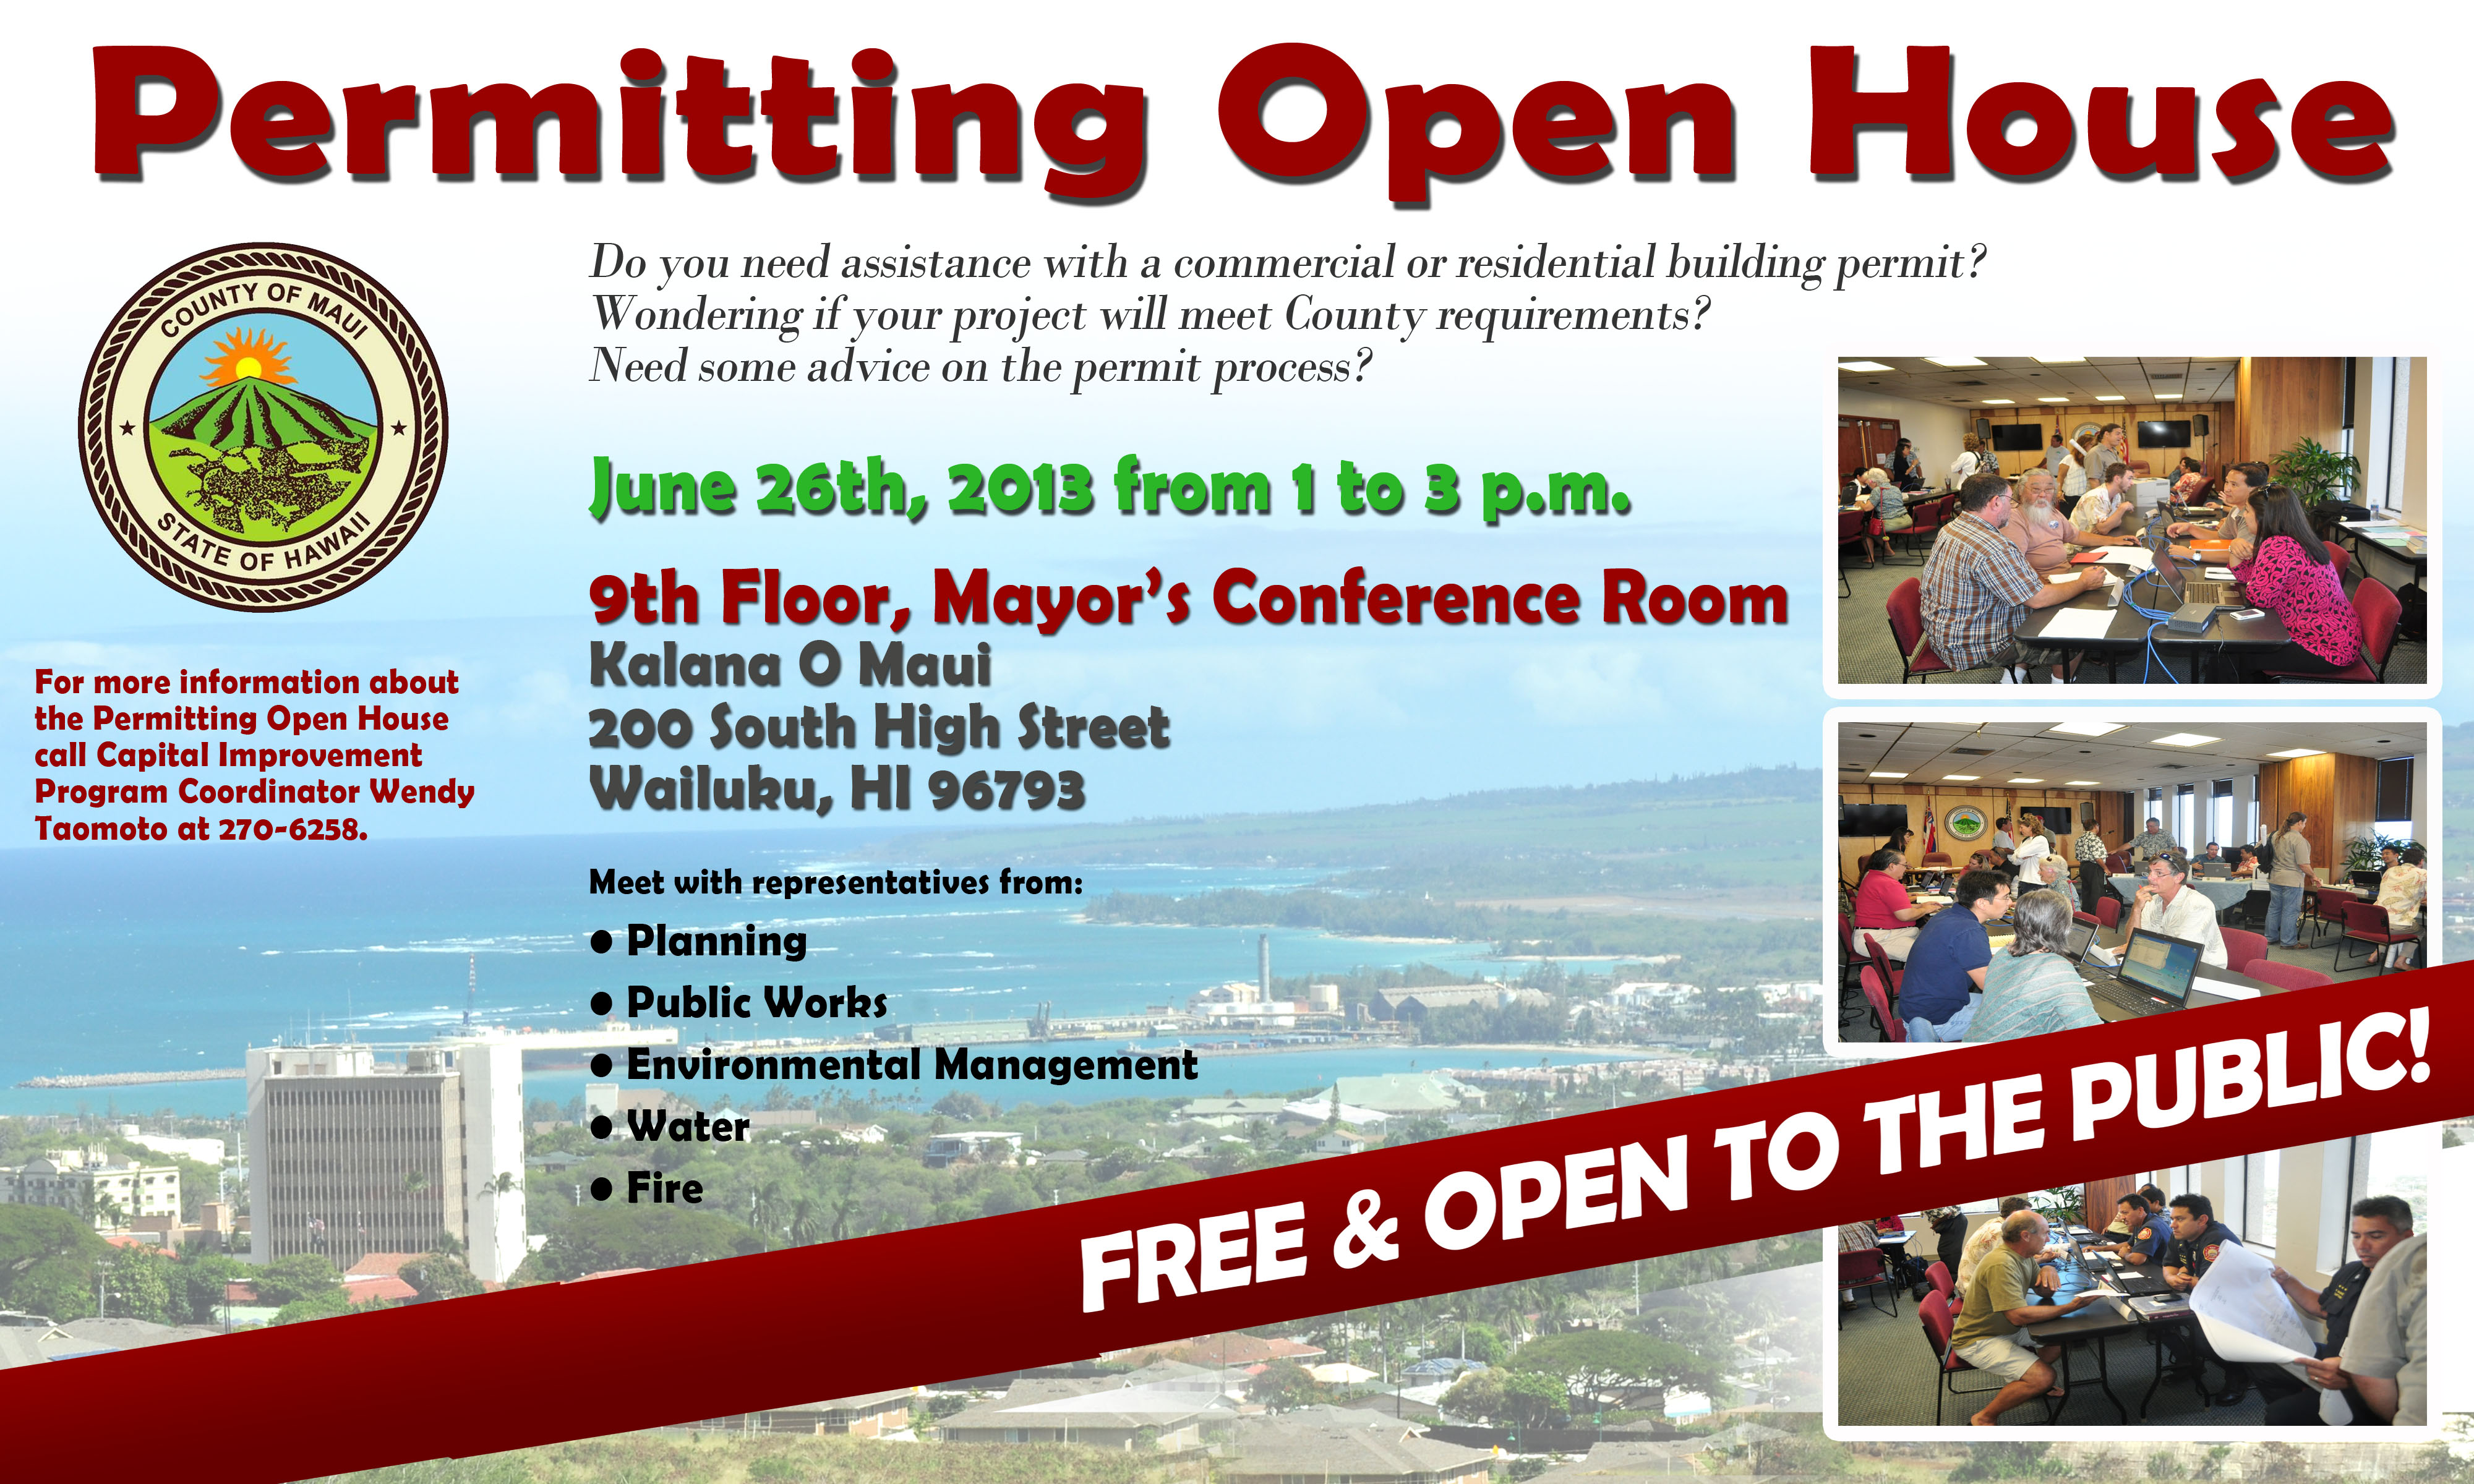 Permitting Open House.jpg